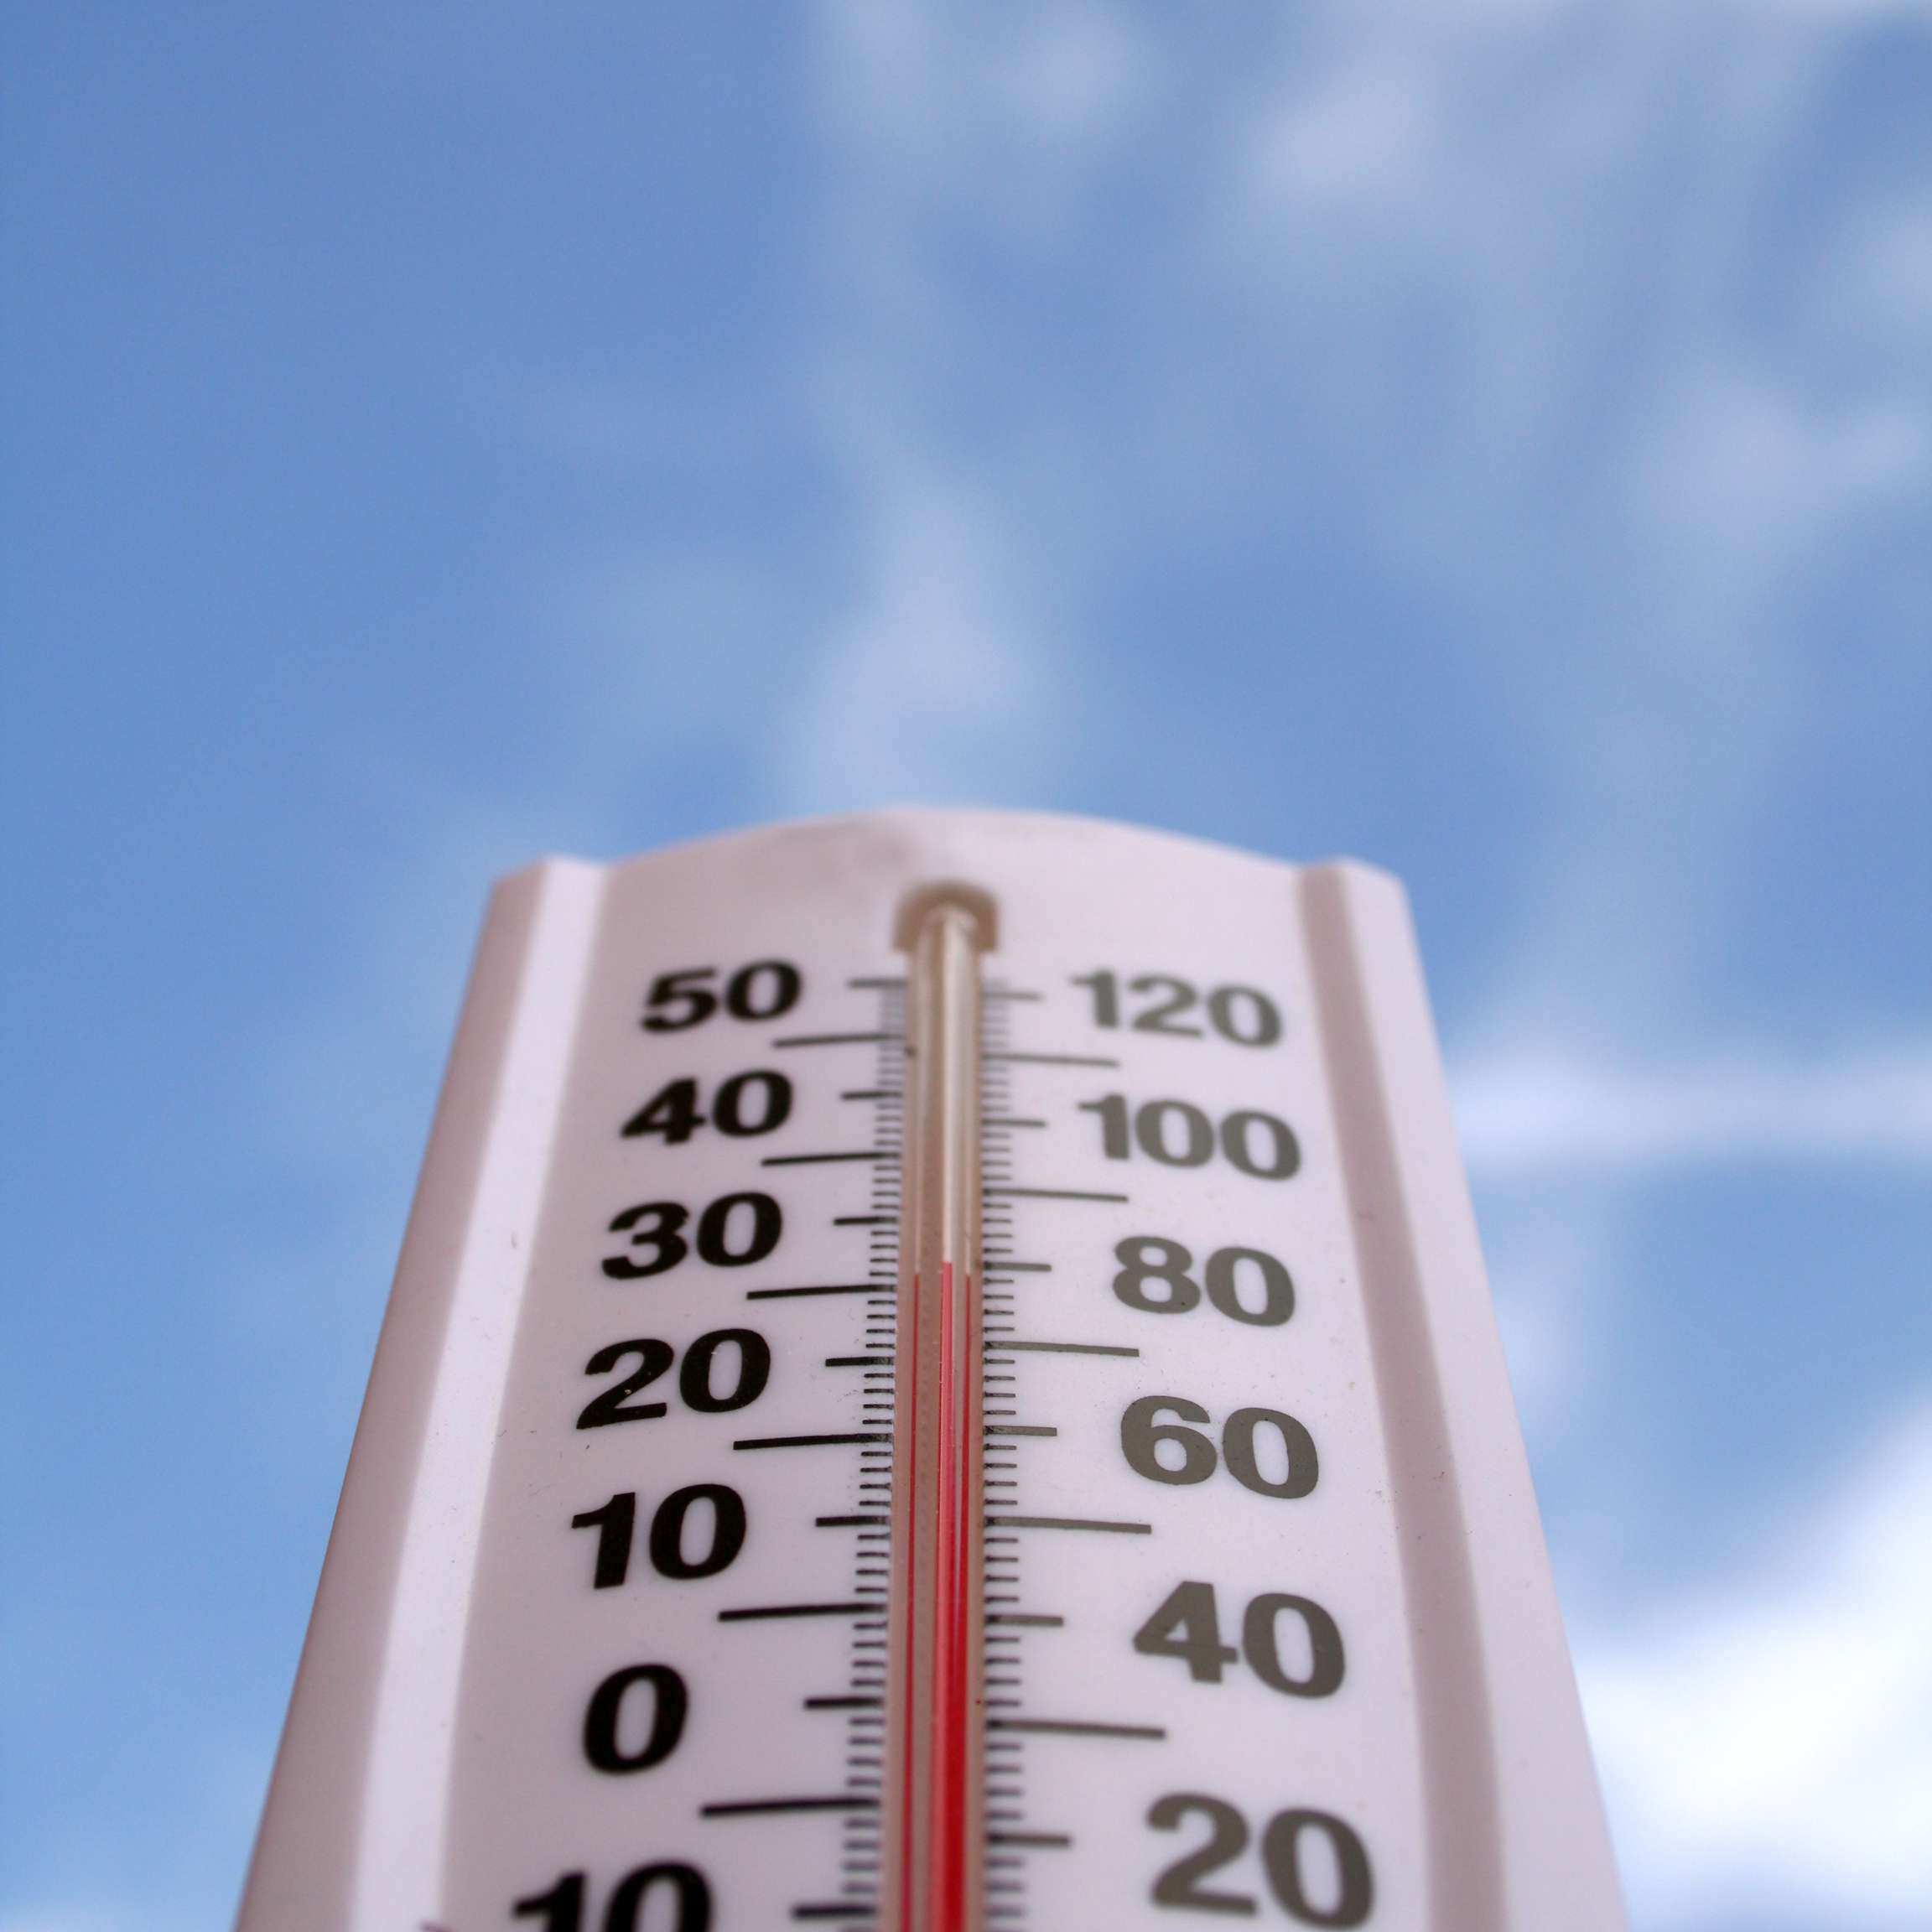 A thermometer showing Celsius and Fahrenheit temps against a blue sky with light clouds.